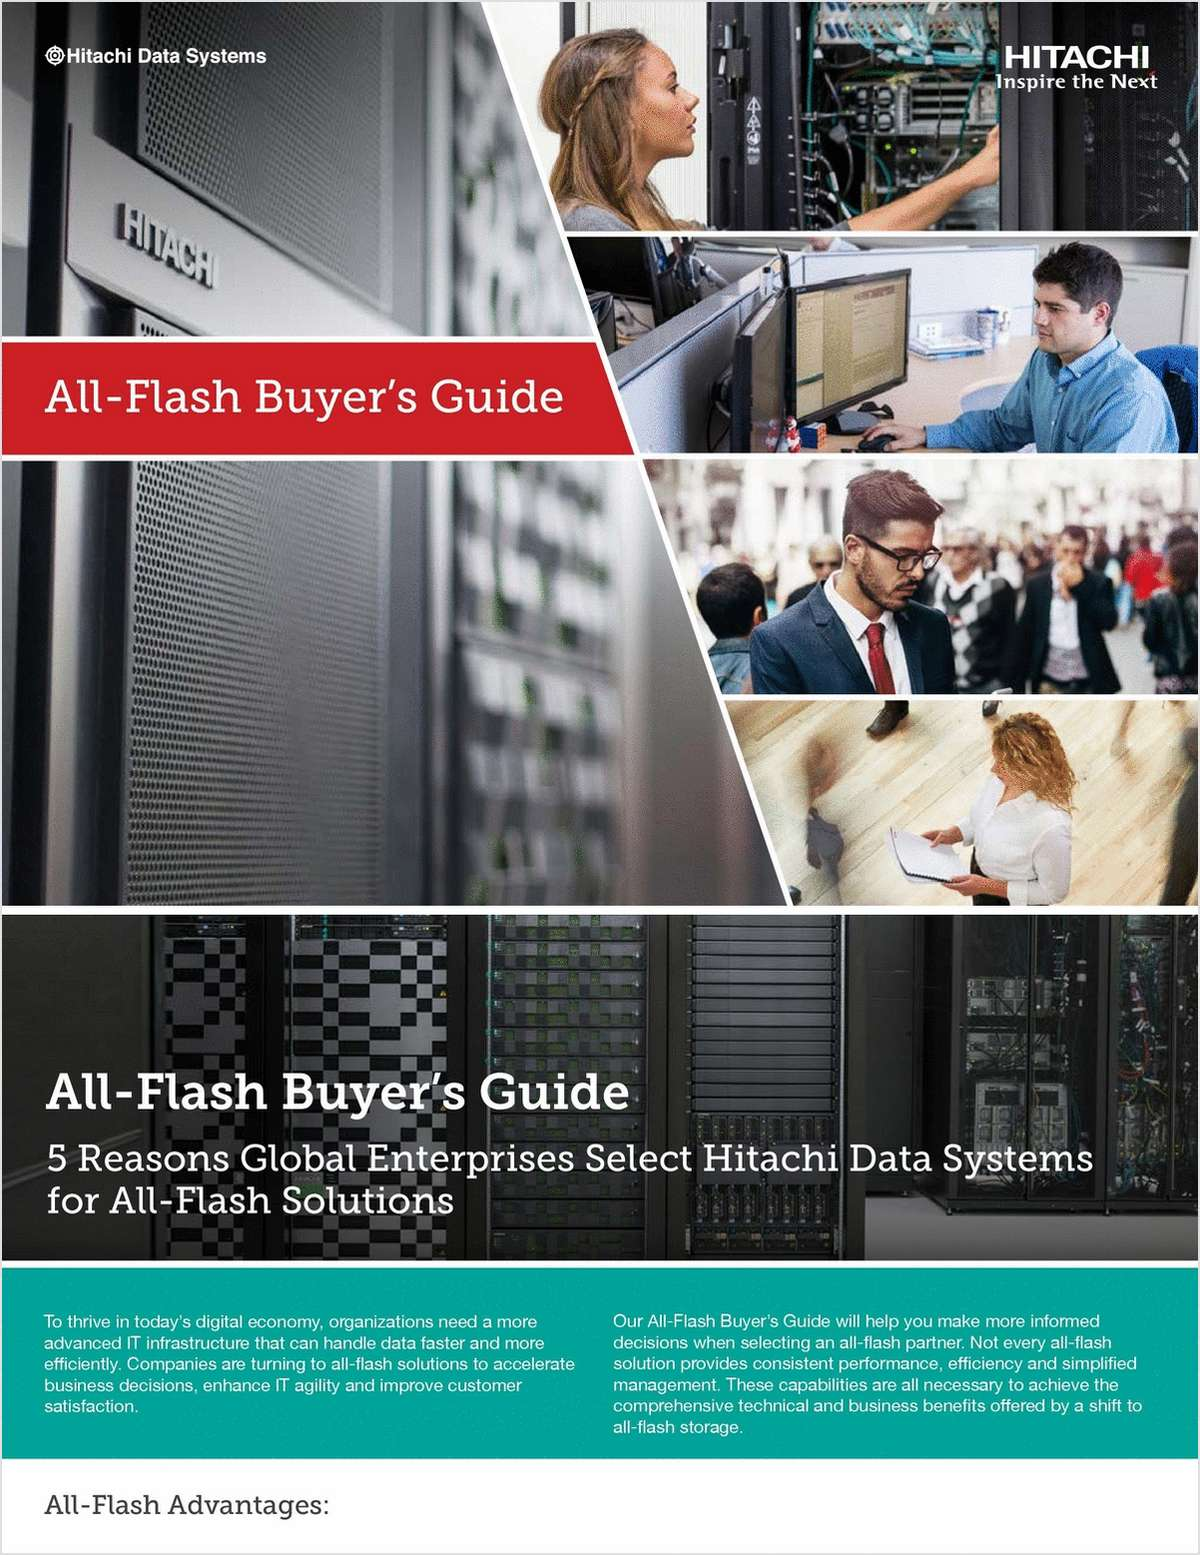 All-Flash Buyer's Guide